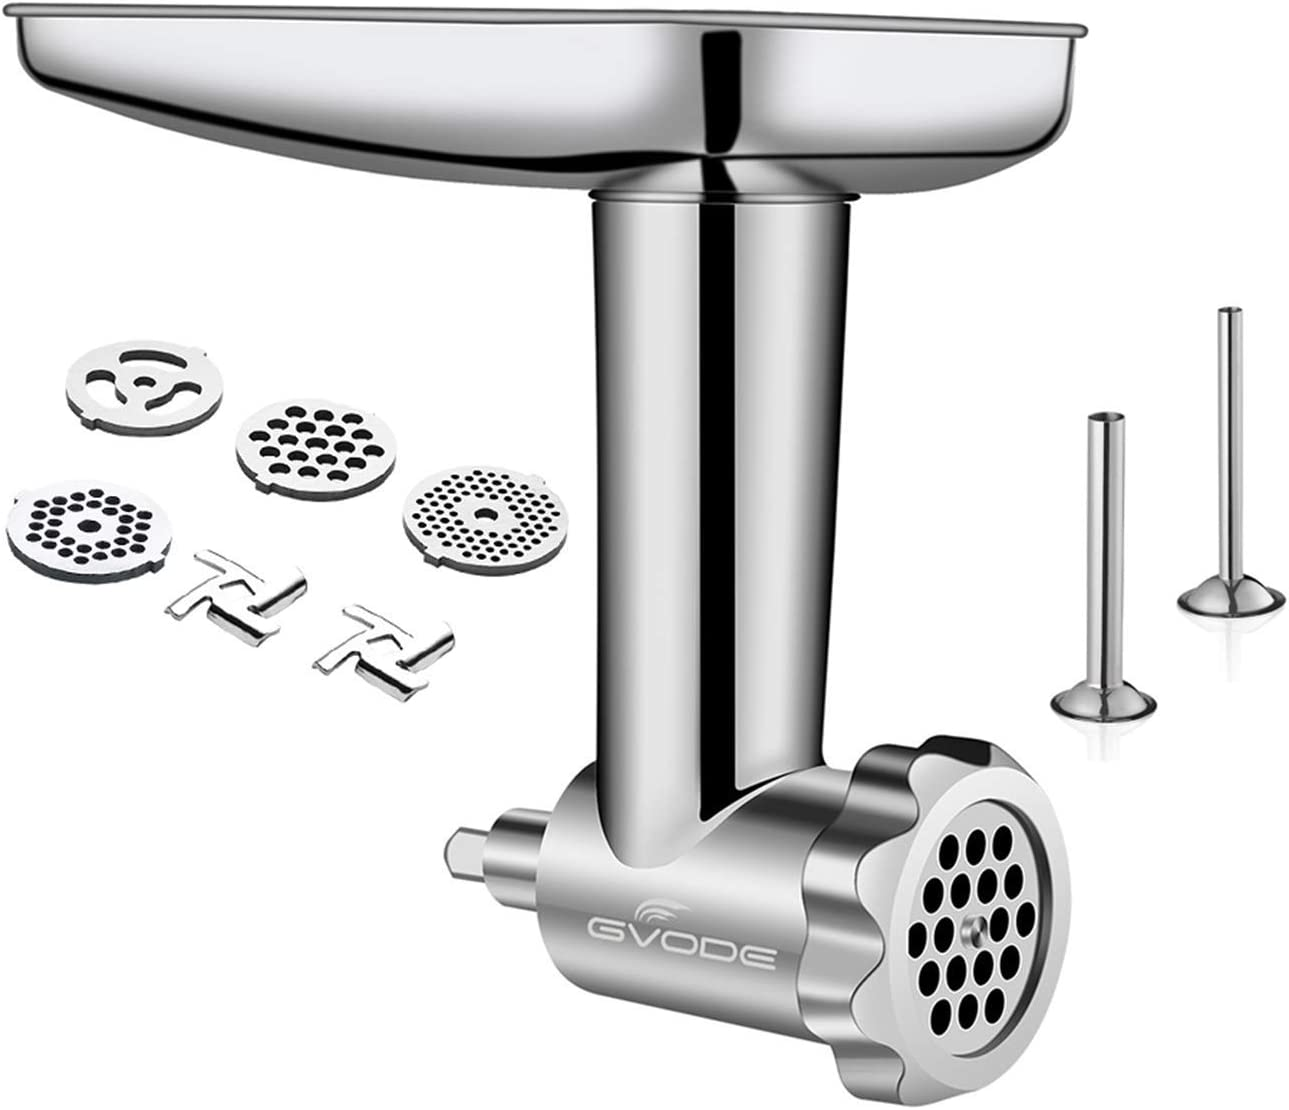 Stainless Steel Food Grinder Attachment fit KitchenAid Stand Mixers Including Sausage Stuffer,...